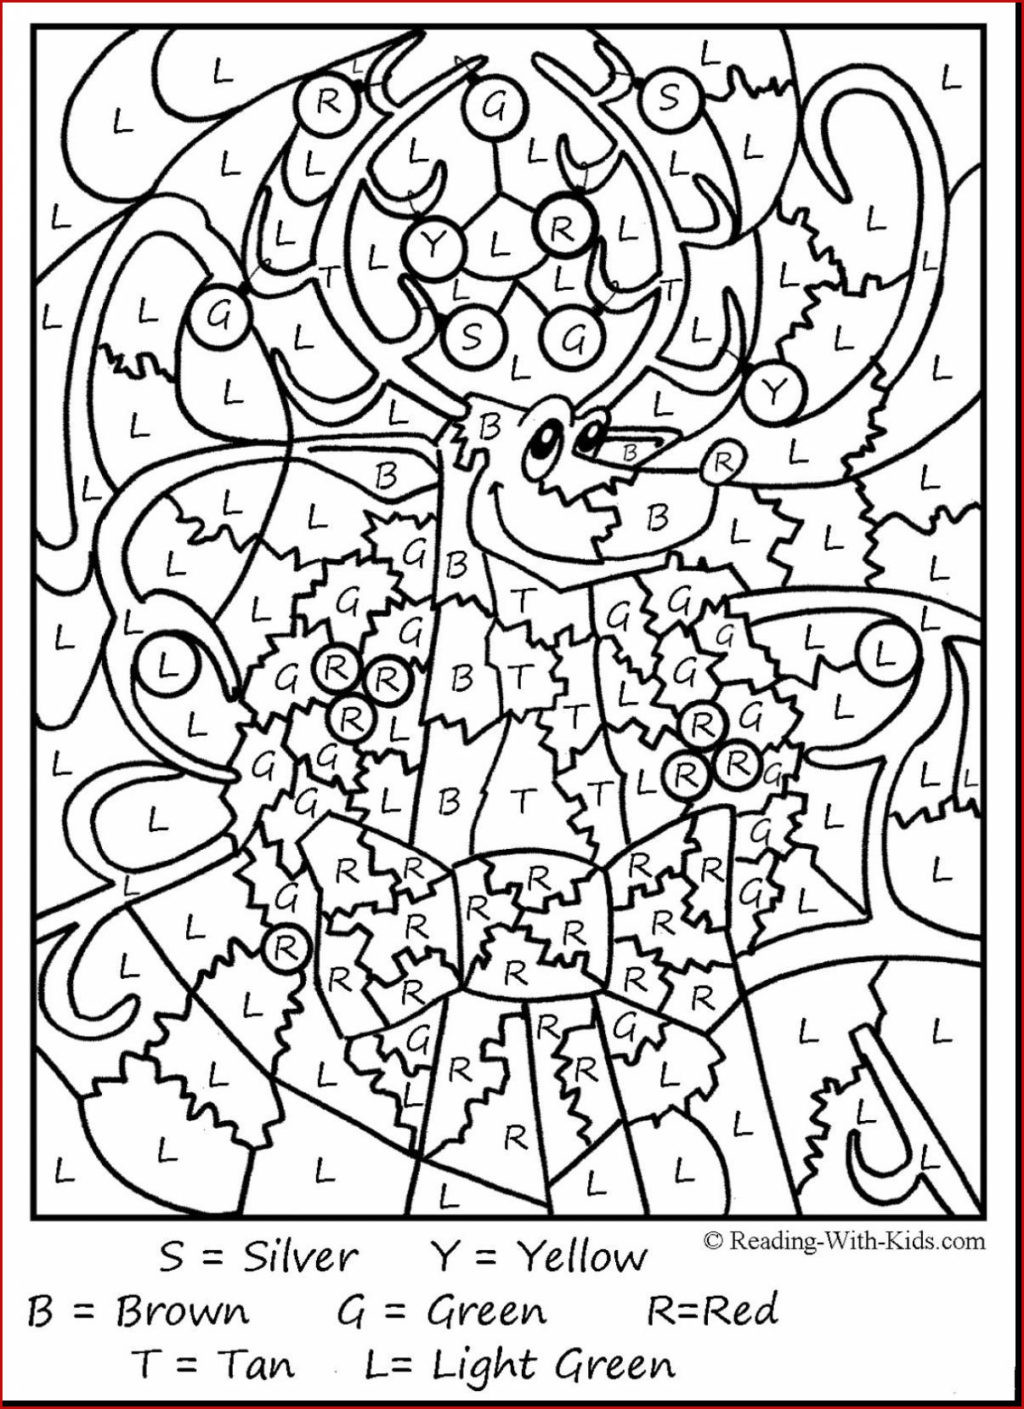 free multiplication coloring worksheets pages freetion mathies puzzles amazing image inspirations halloween 1024x1409